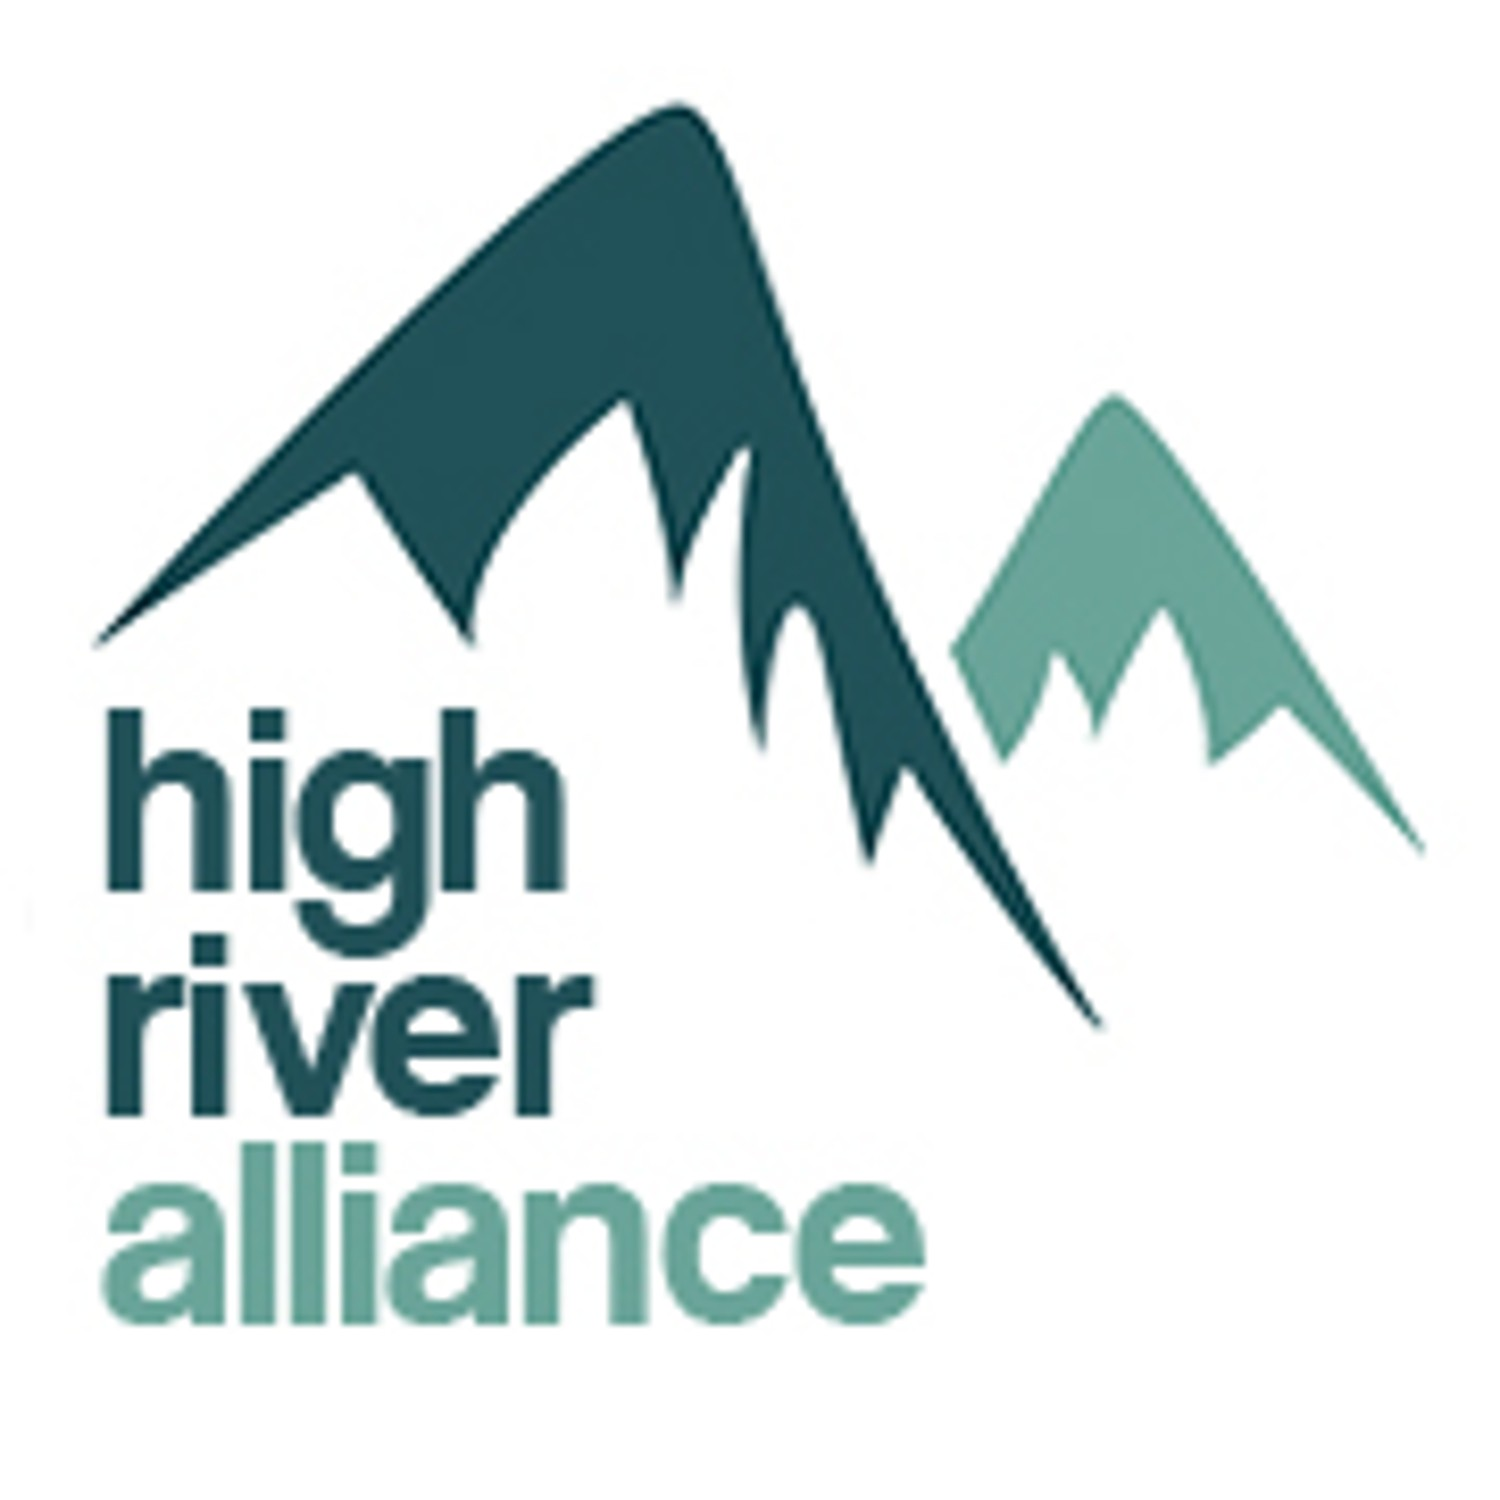 High River Alliance Church